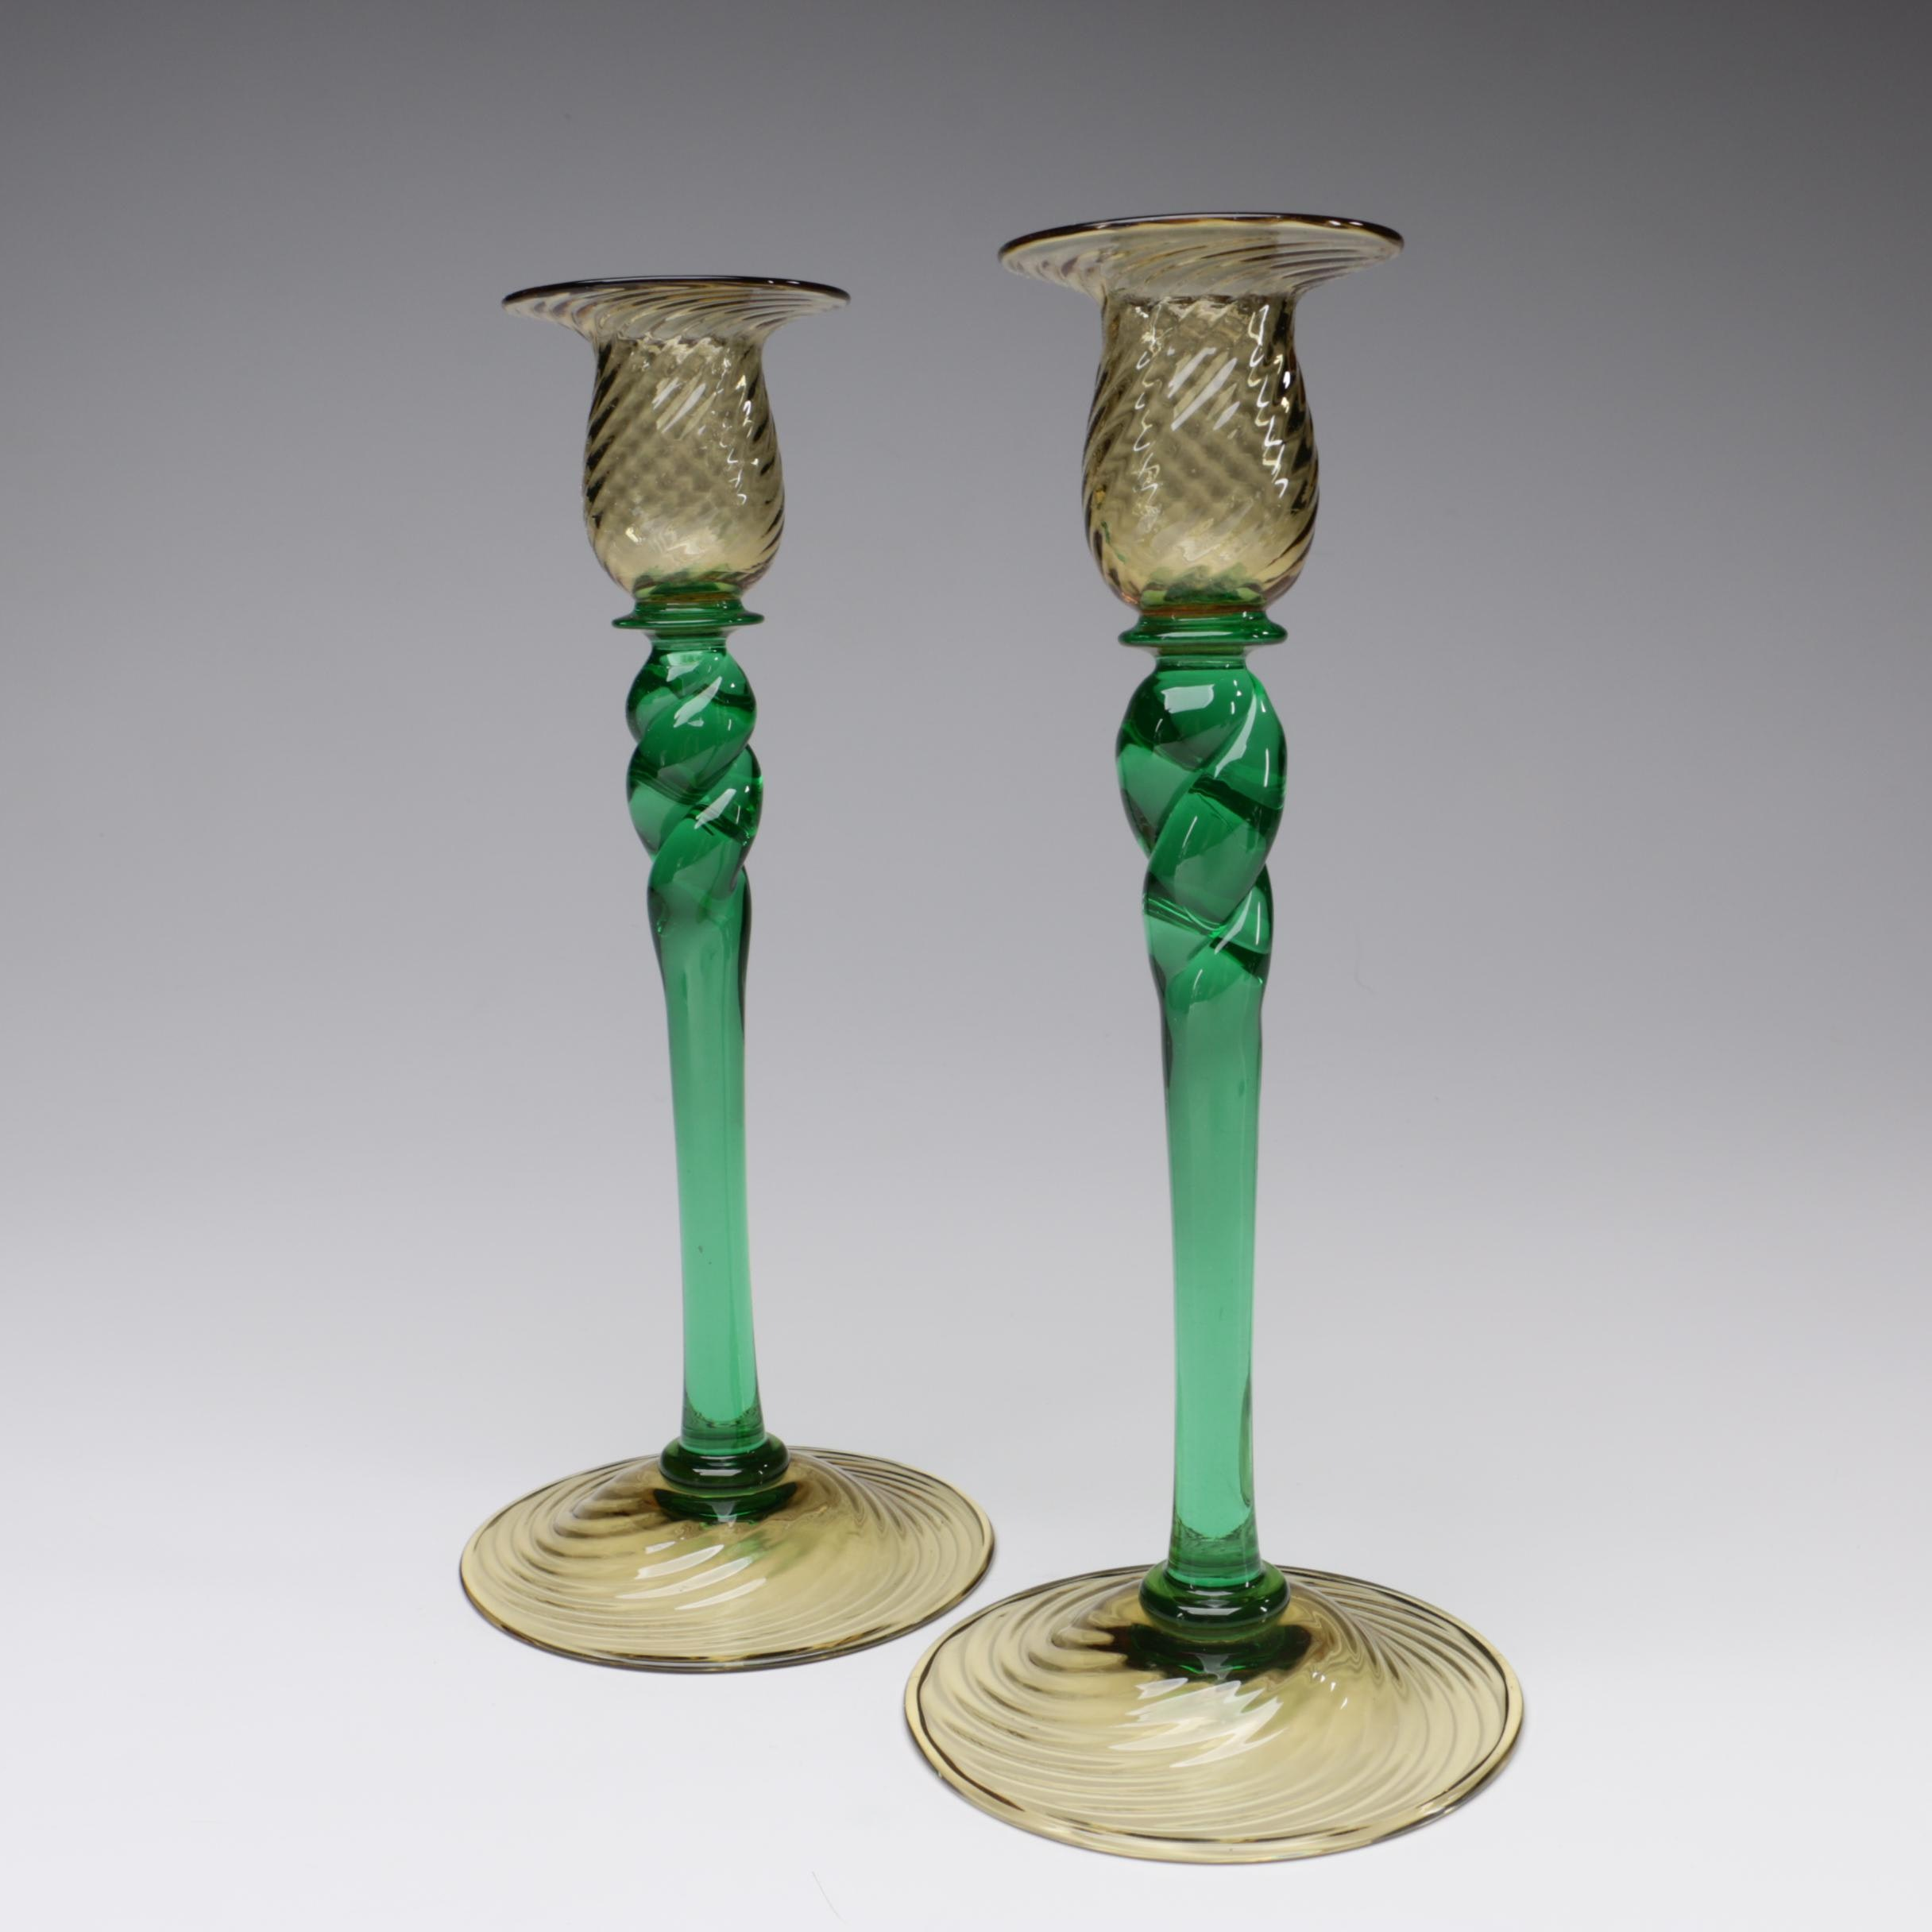 Steuben Pomona Green and Topaz Art Glass Candlesticks, Early 20th Century